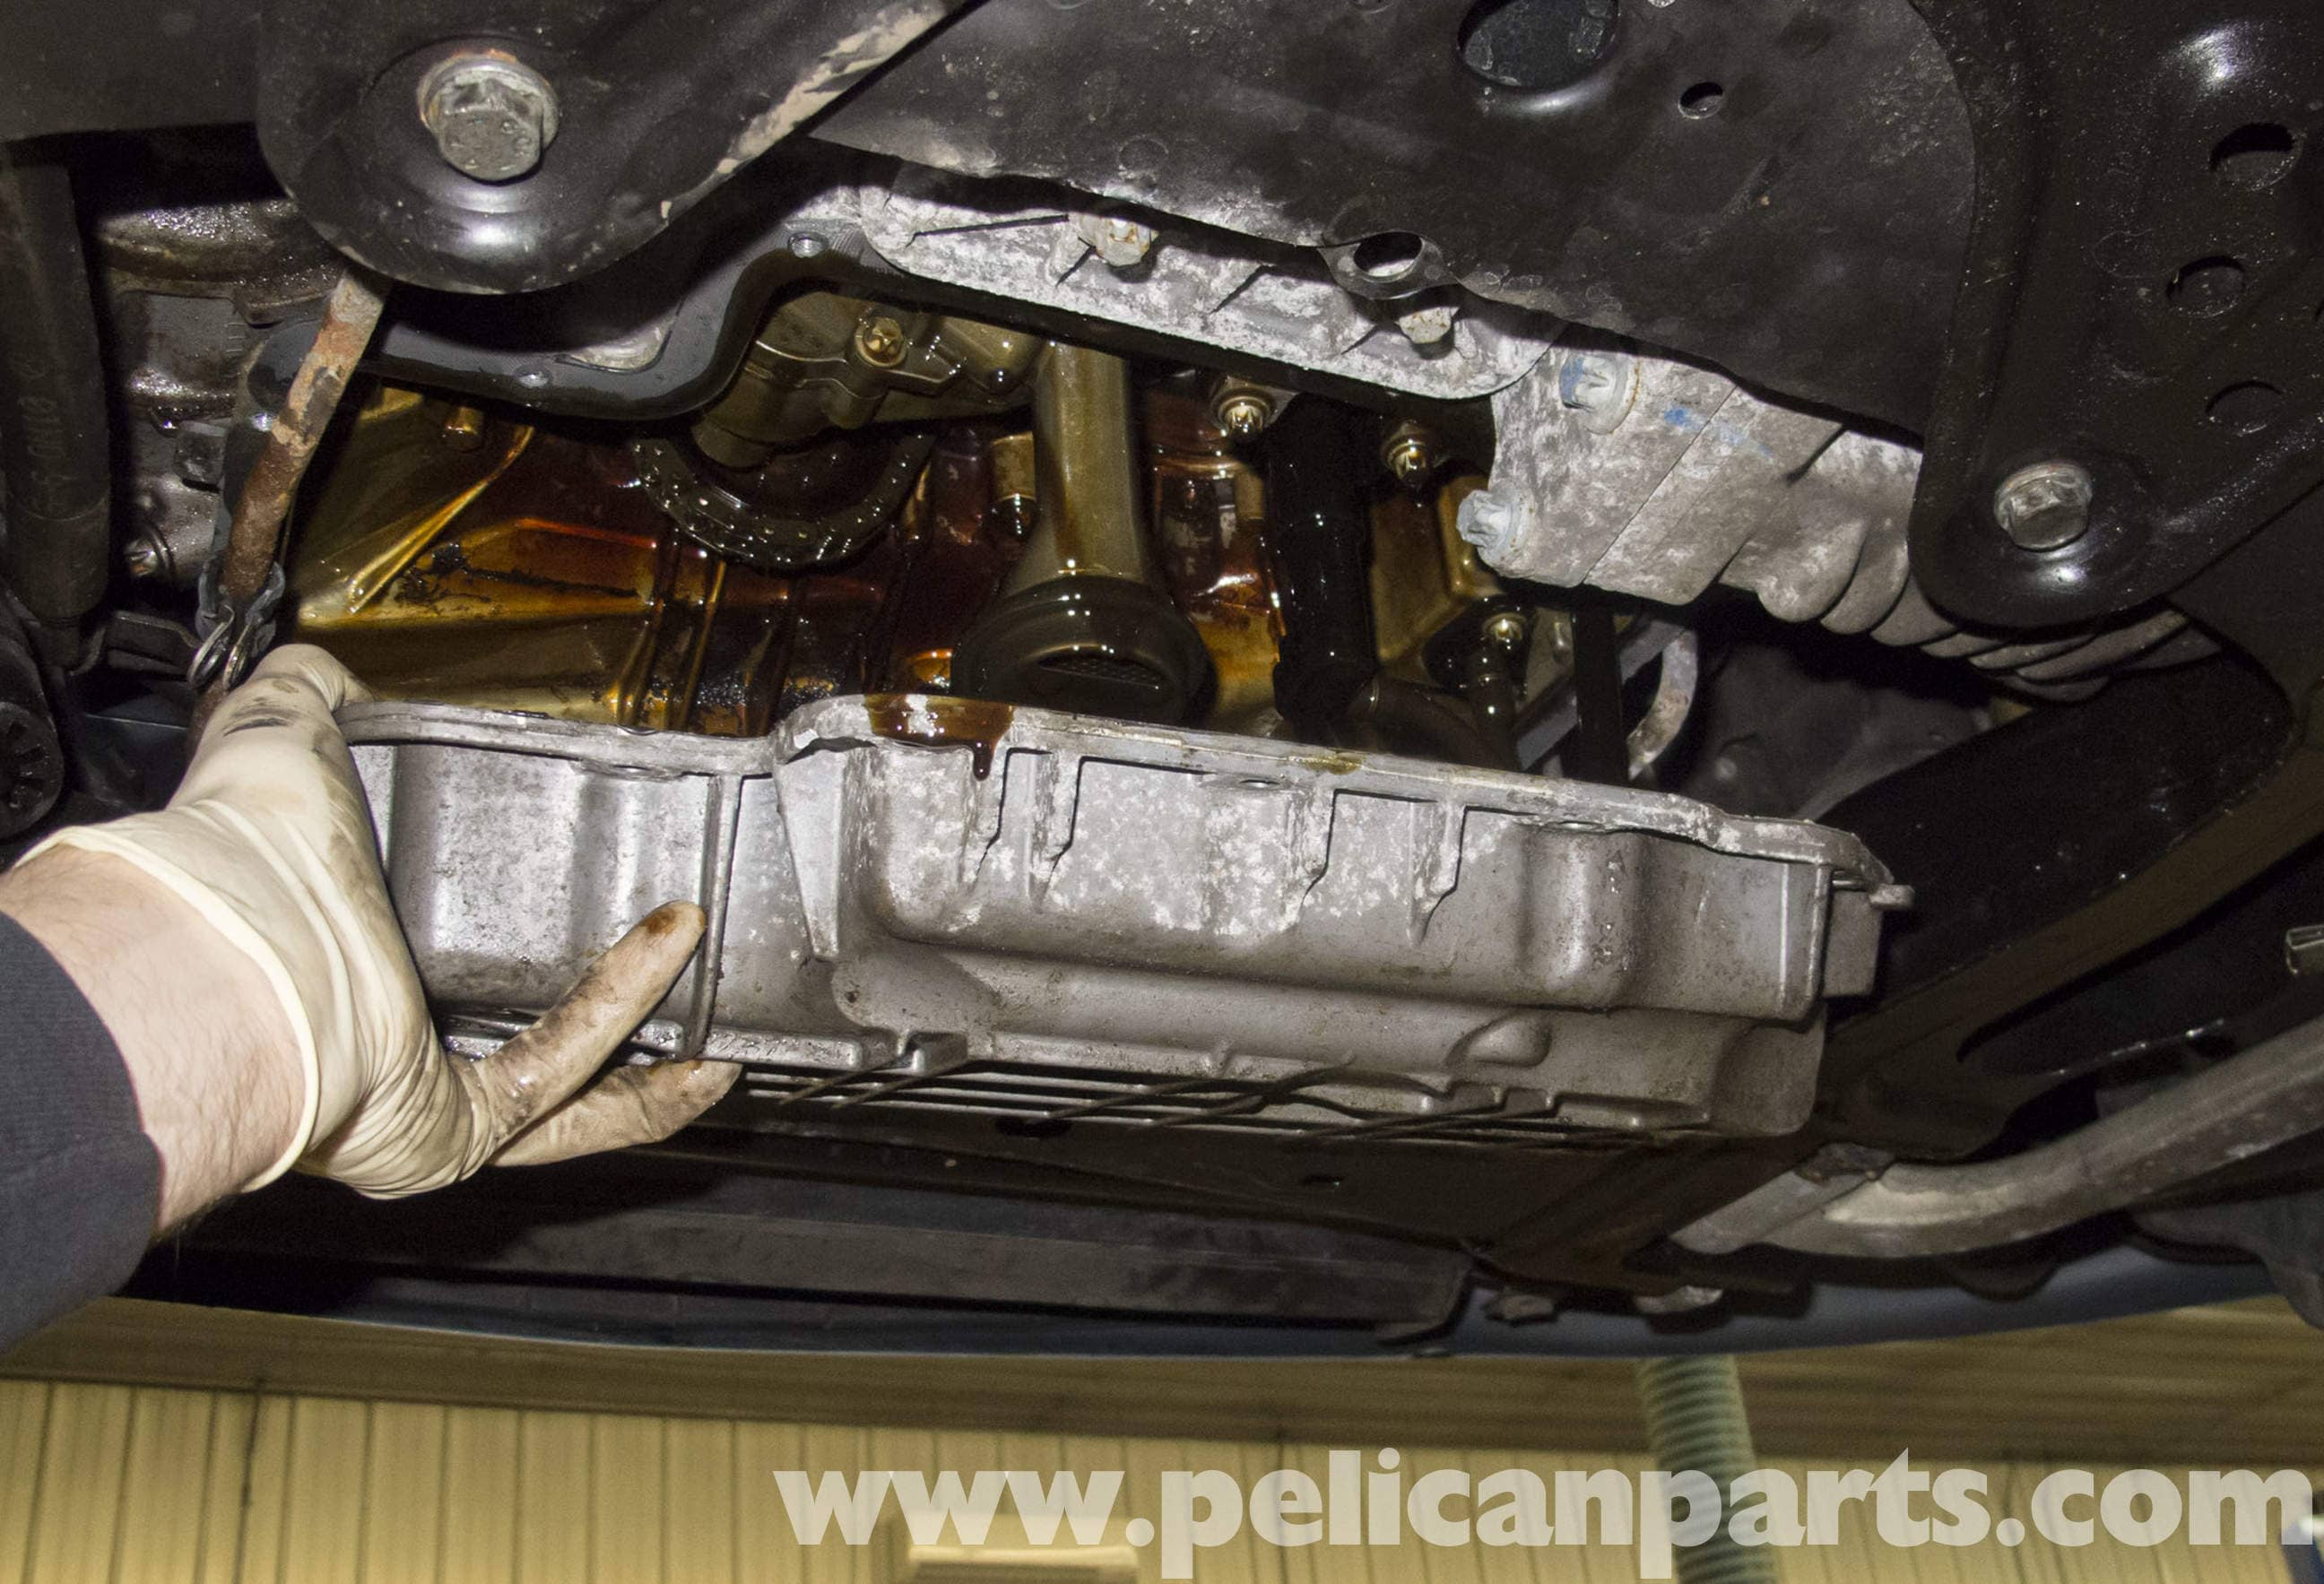 Mercedes benz w211 oil pan gasket replacement 2003 2009 for Where can i drop off used motor oil